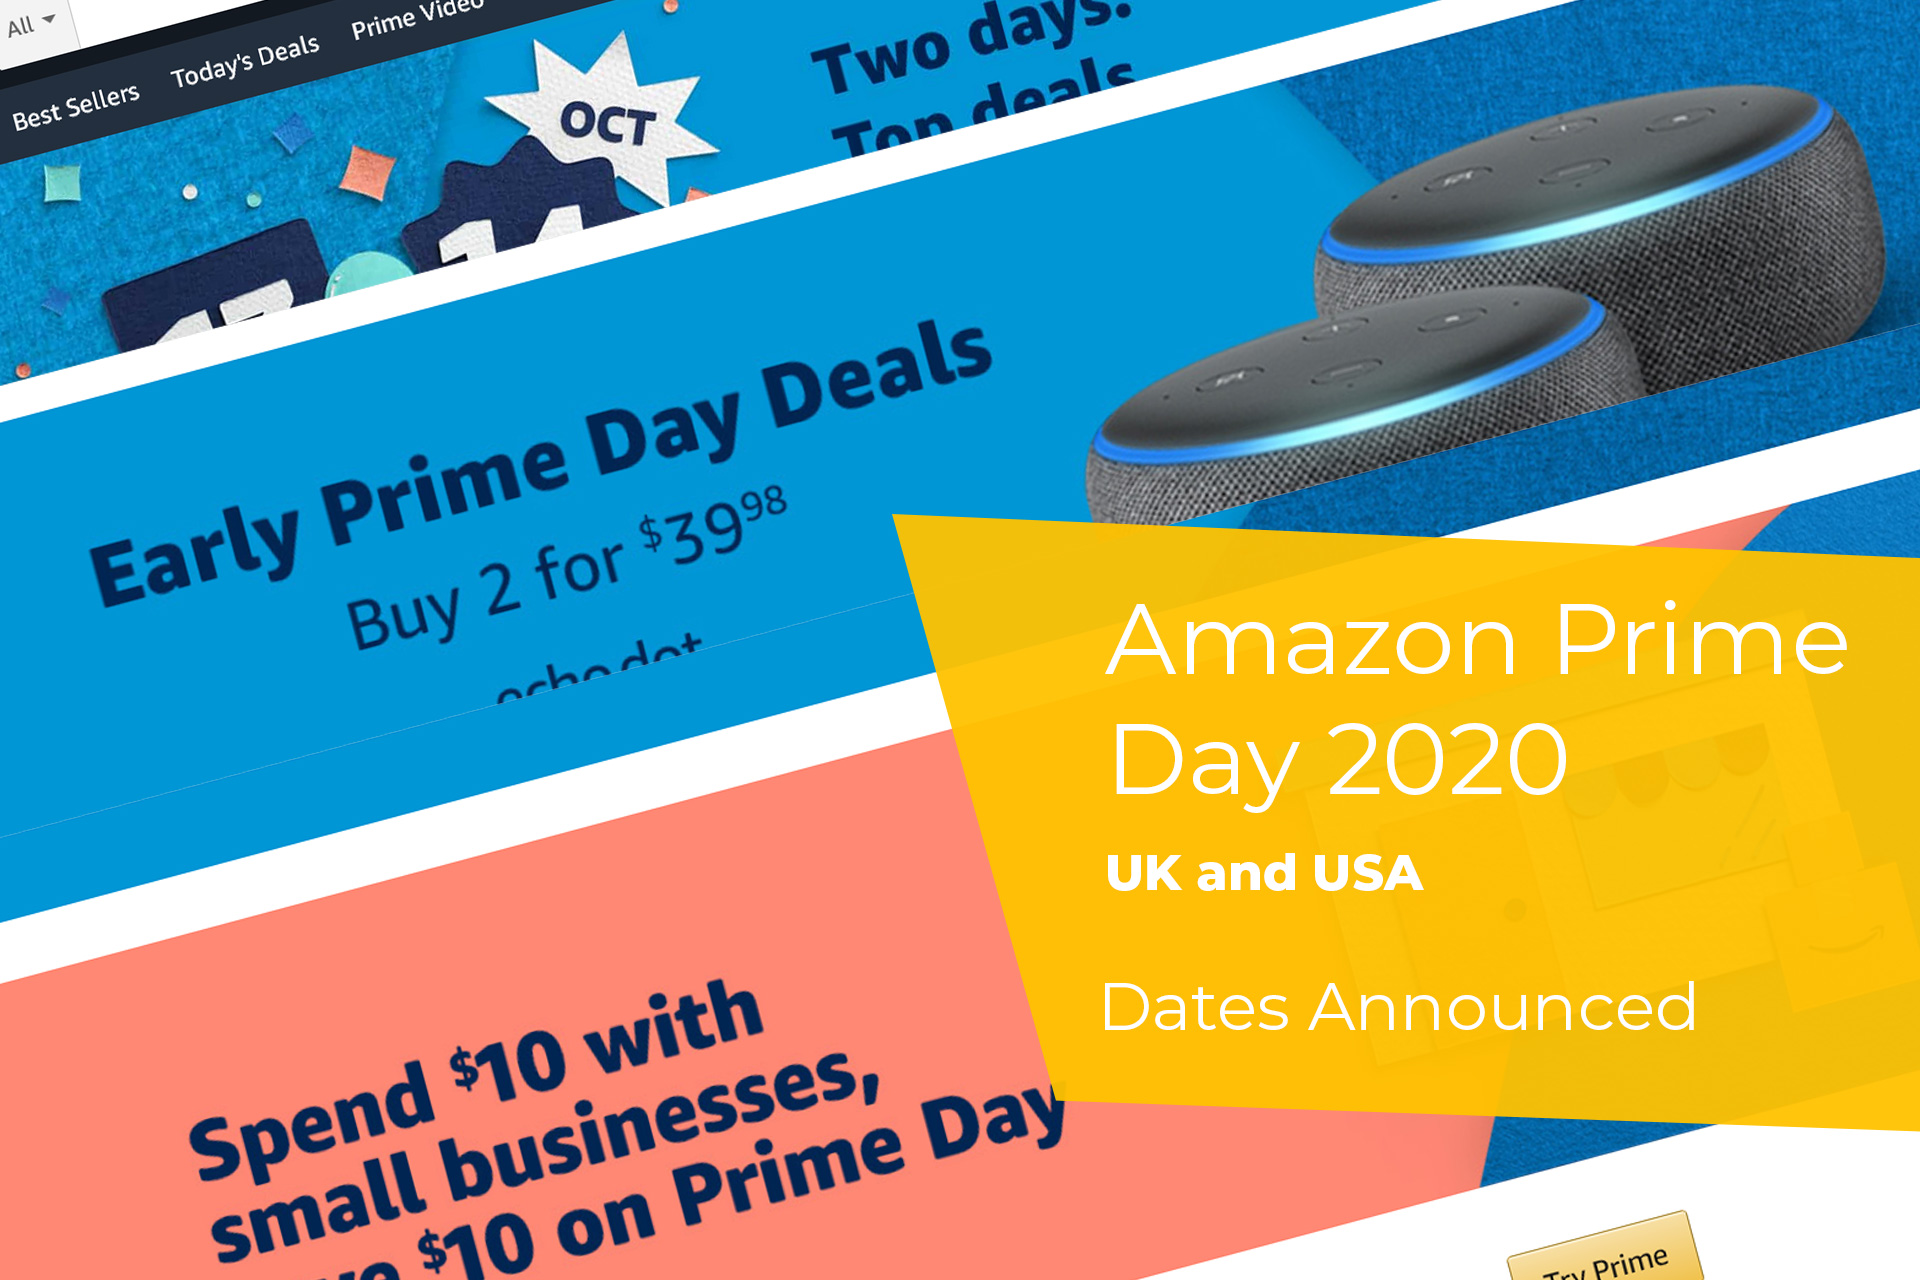 Amazon Prime Day UK and USA 2020 Dates Announced